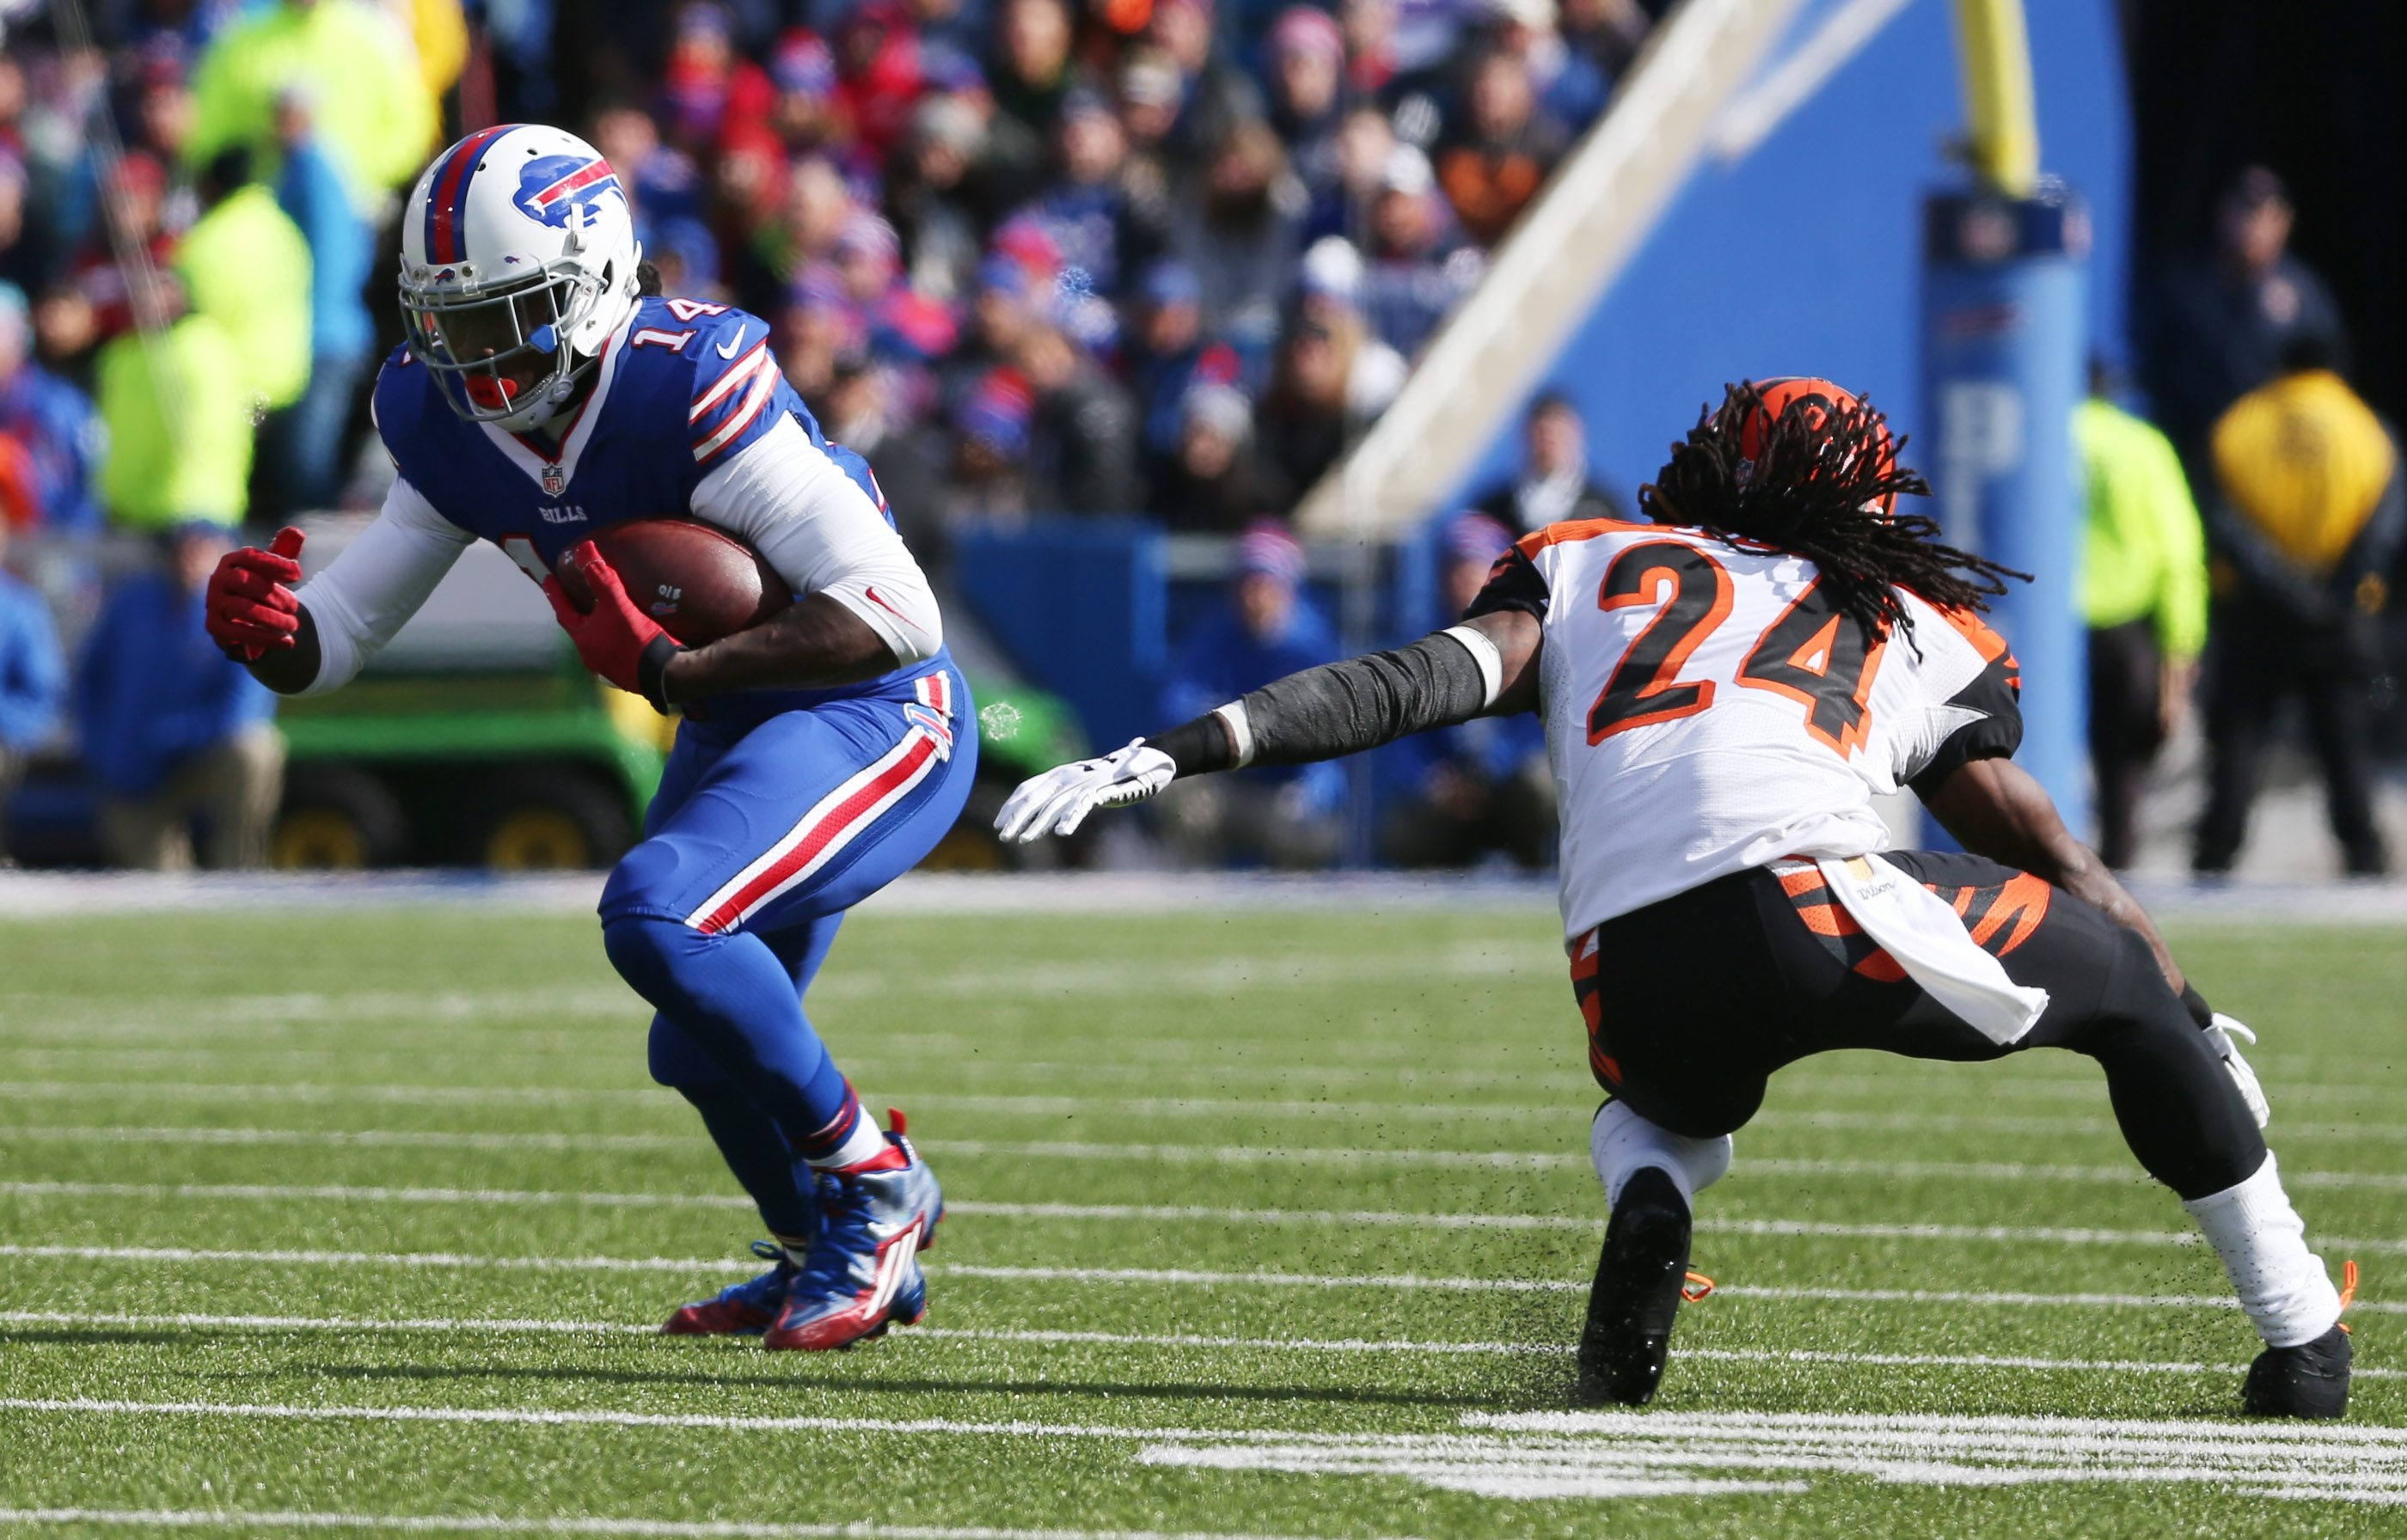 Buffalo Bills wide receiver Sammy Watkins (14) beats Cincinnati Bengals cornerback Adam Jones (24) in the second quarter at Ralph Wilson Stadium in Orchard Park,NY on Sunday, Oct. 18, 2015.  (James P. McCoy/ Buffalo News)